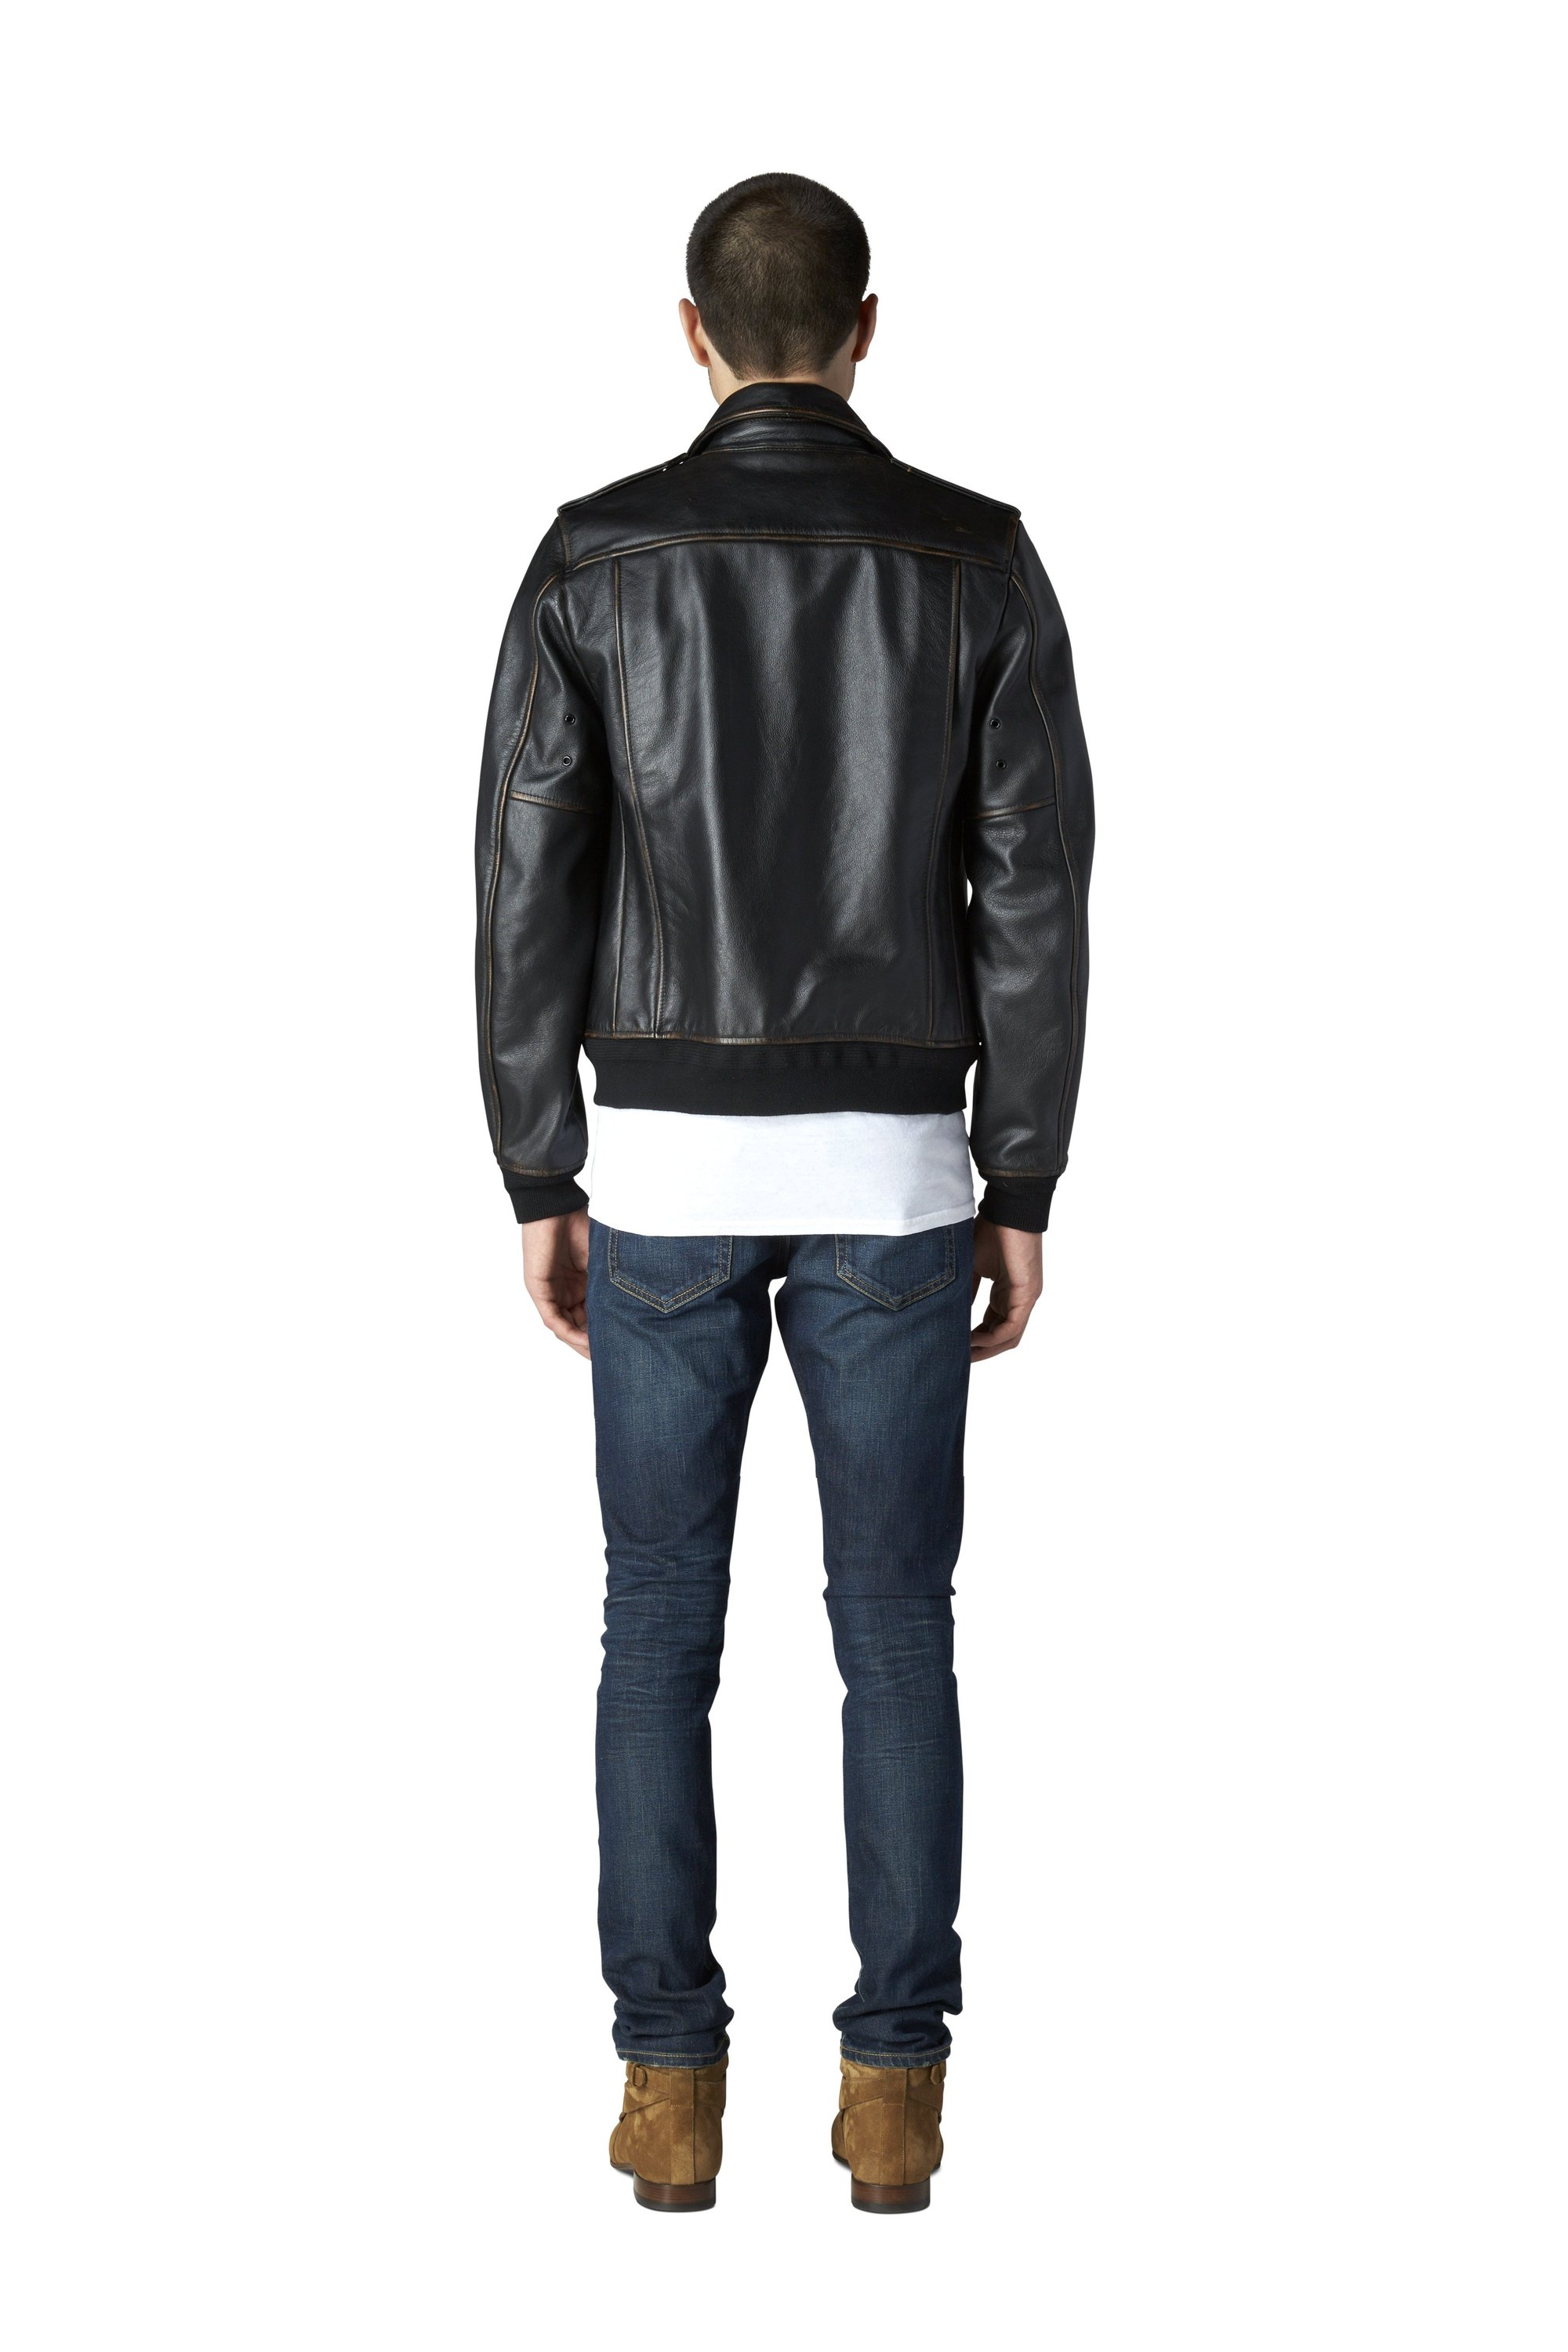 No. 1 Biker - Black | The Assembly of Leather | Shop Now - LAC